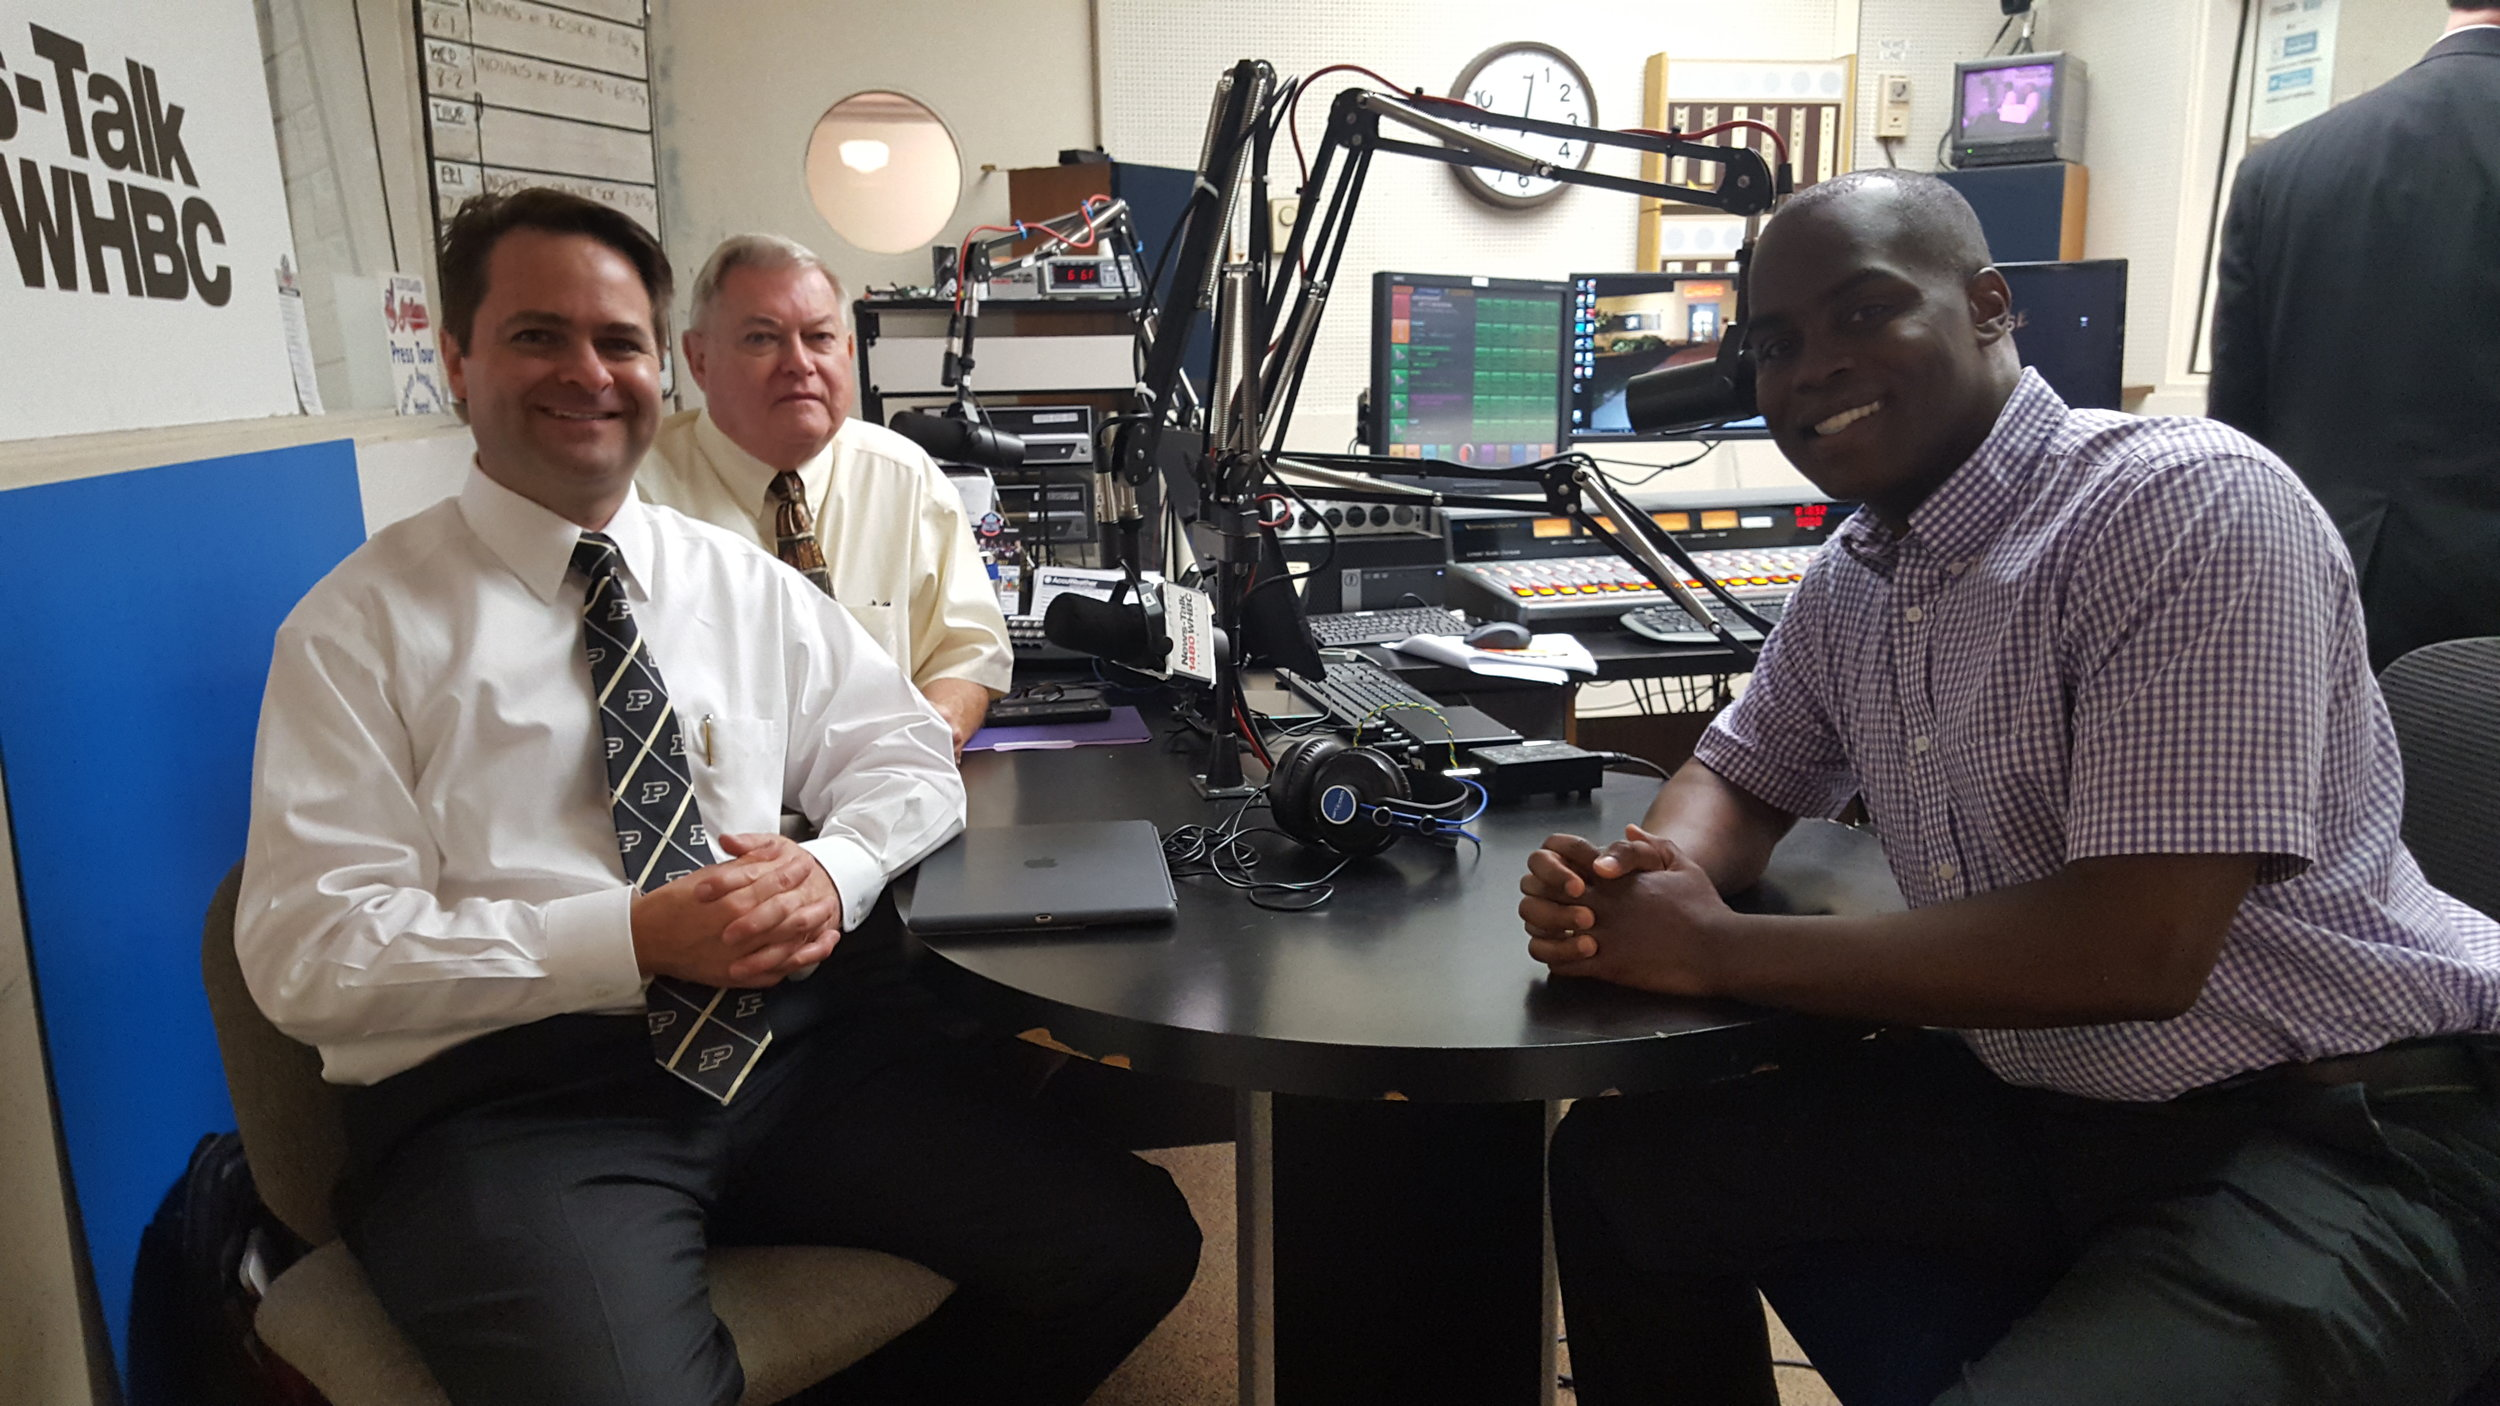 Health Matters hosts and pharmacists, Brad White and Paul White discuss general dentistry with Dr. Brian Amison of Amison Dental Group.